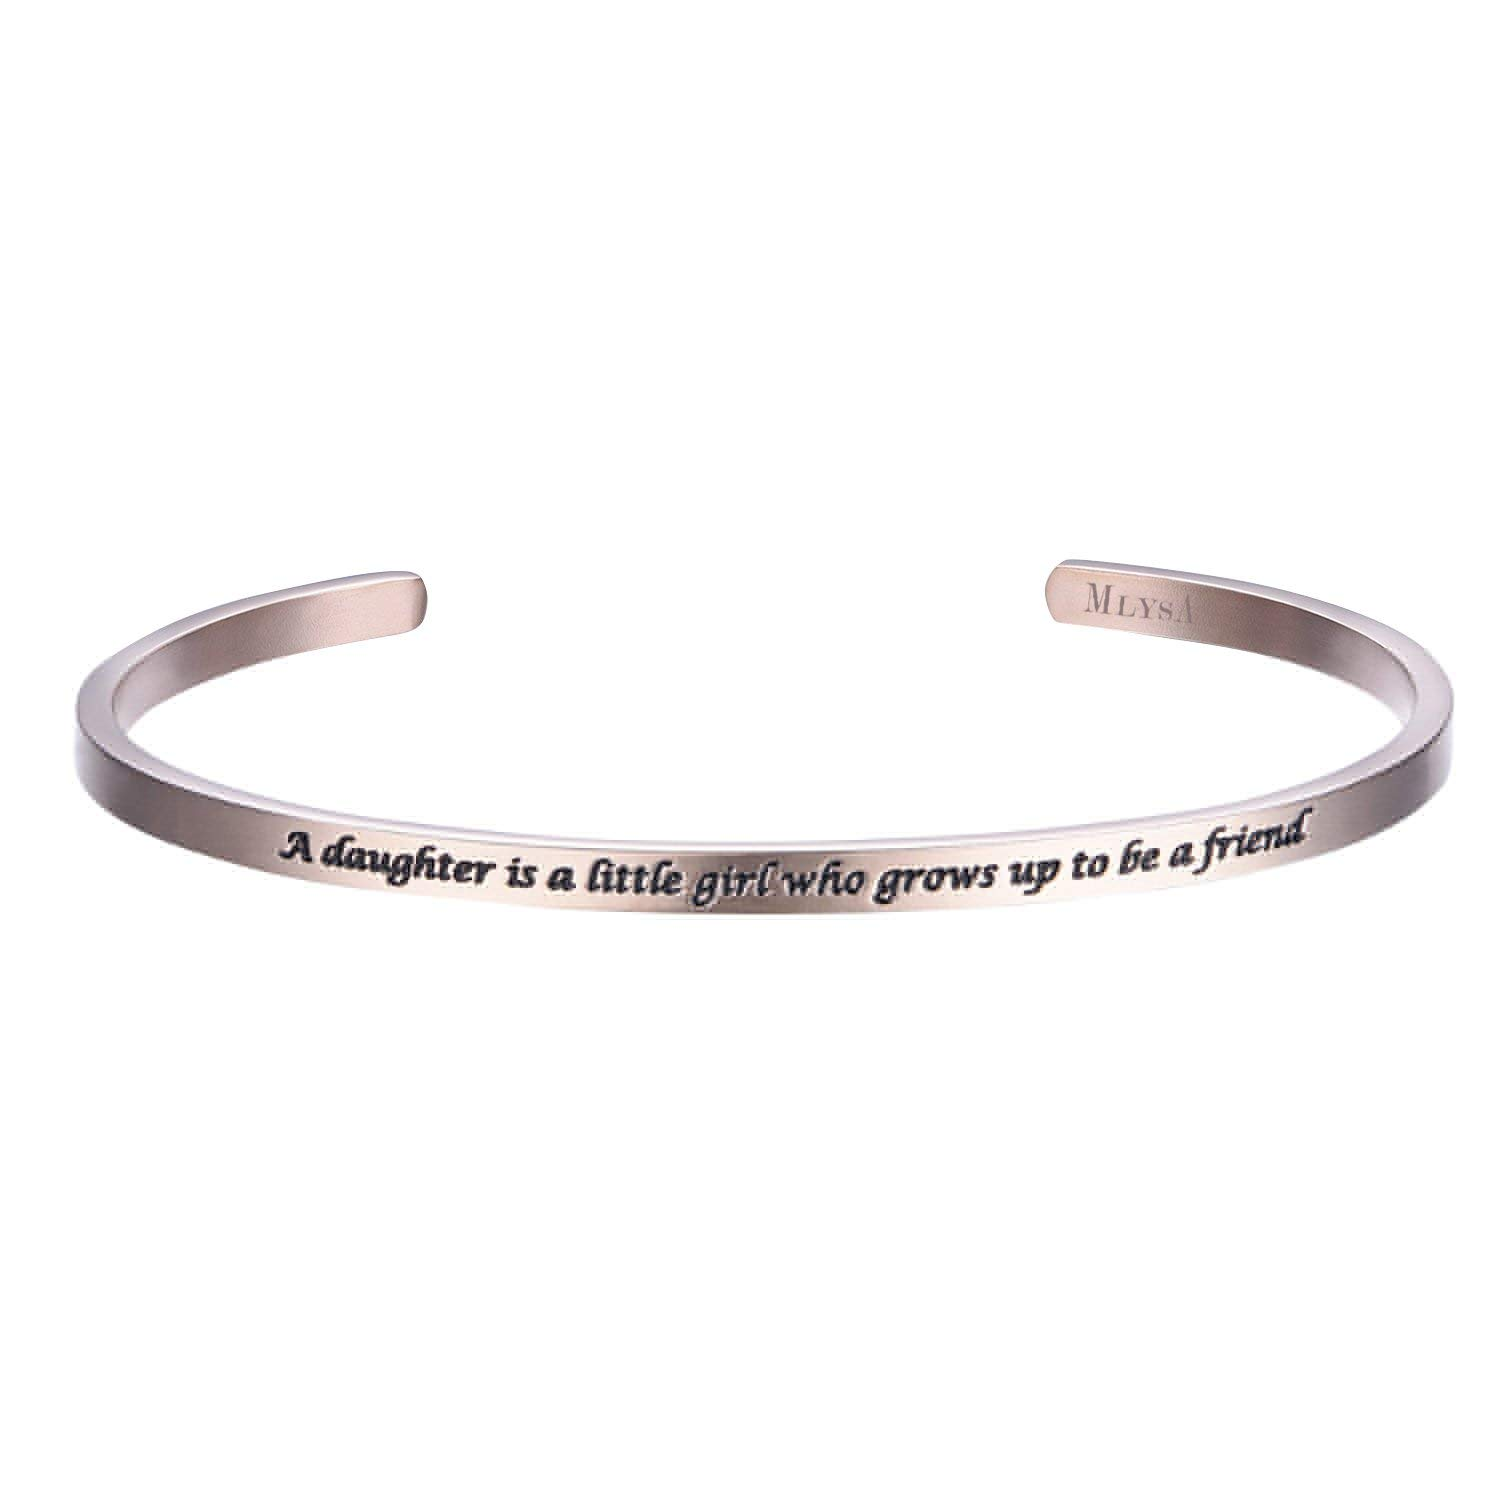 Shally 'A Daughter Is A Little Girl Who Grows Up To Be A Friend' Cuff Bangle Wrist Band Bracelet